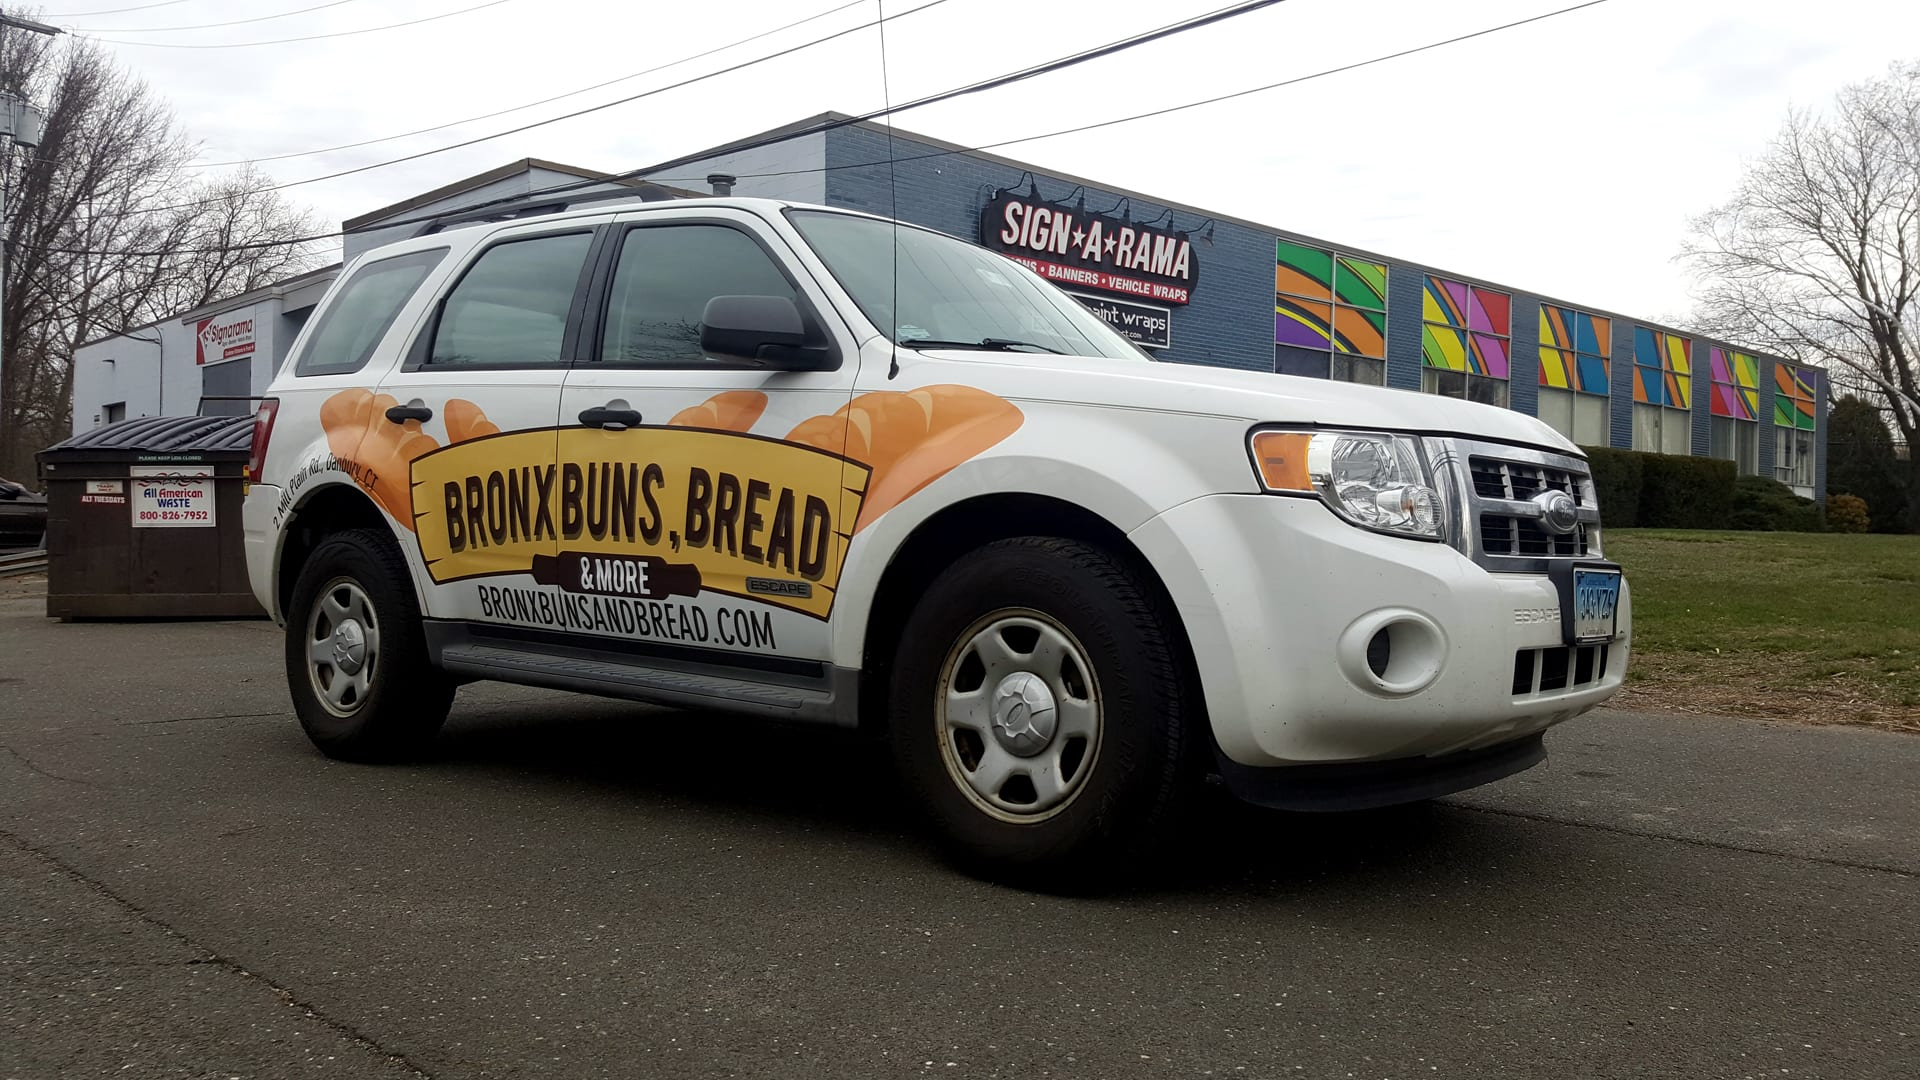 Bronx Buns, Bread and More - Vehicle Wrap